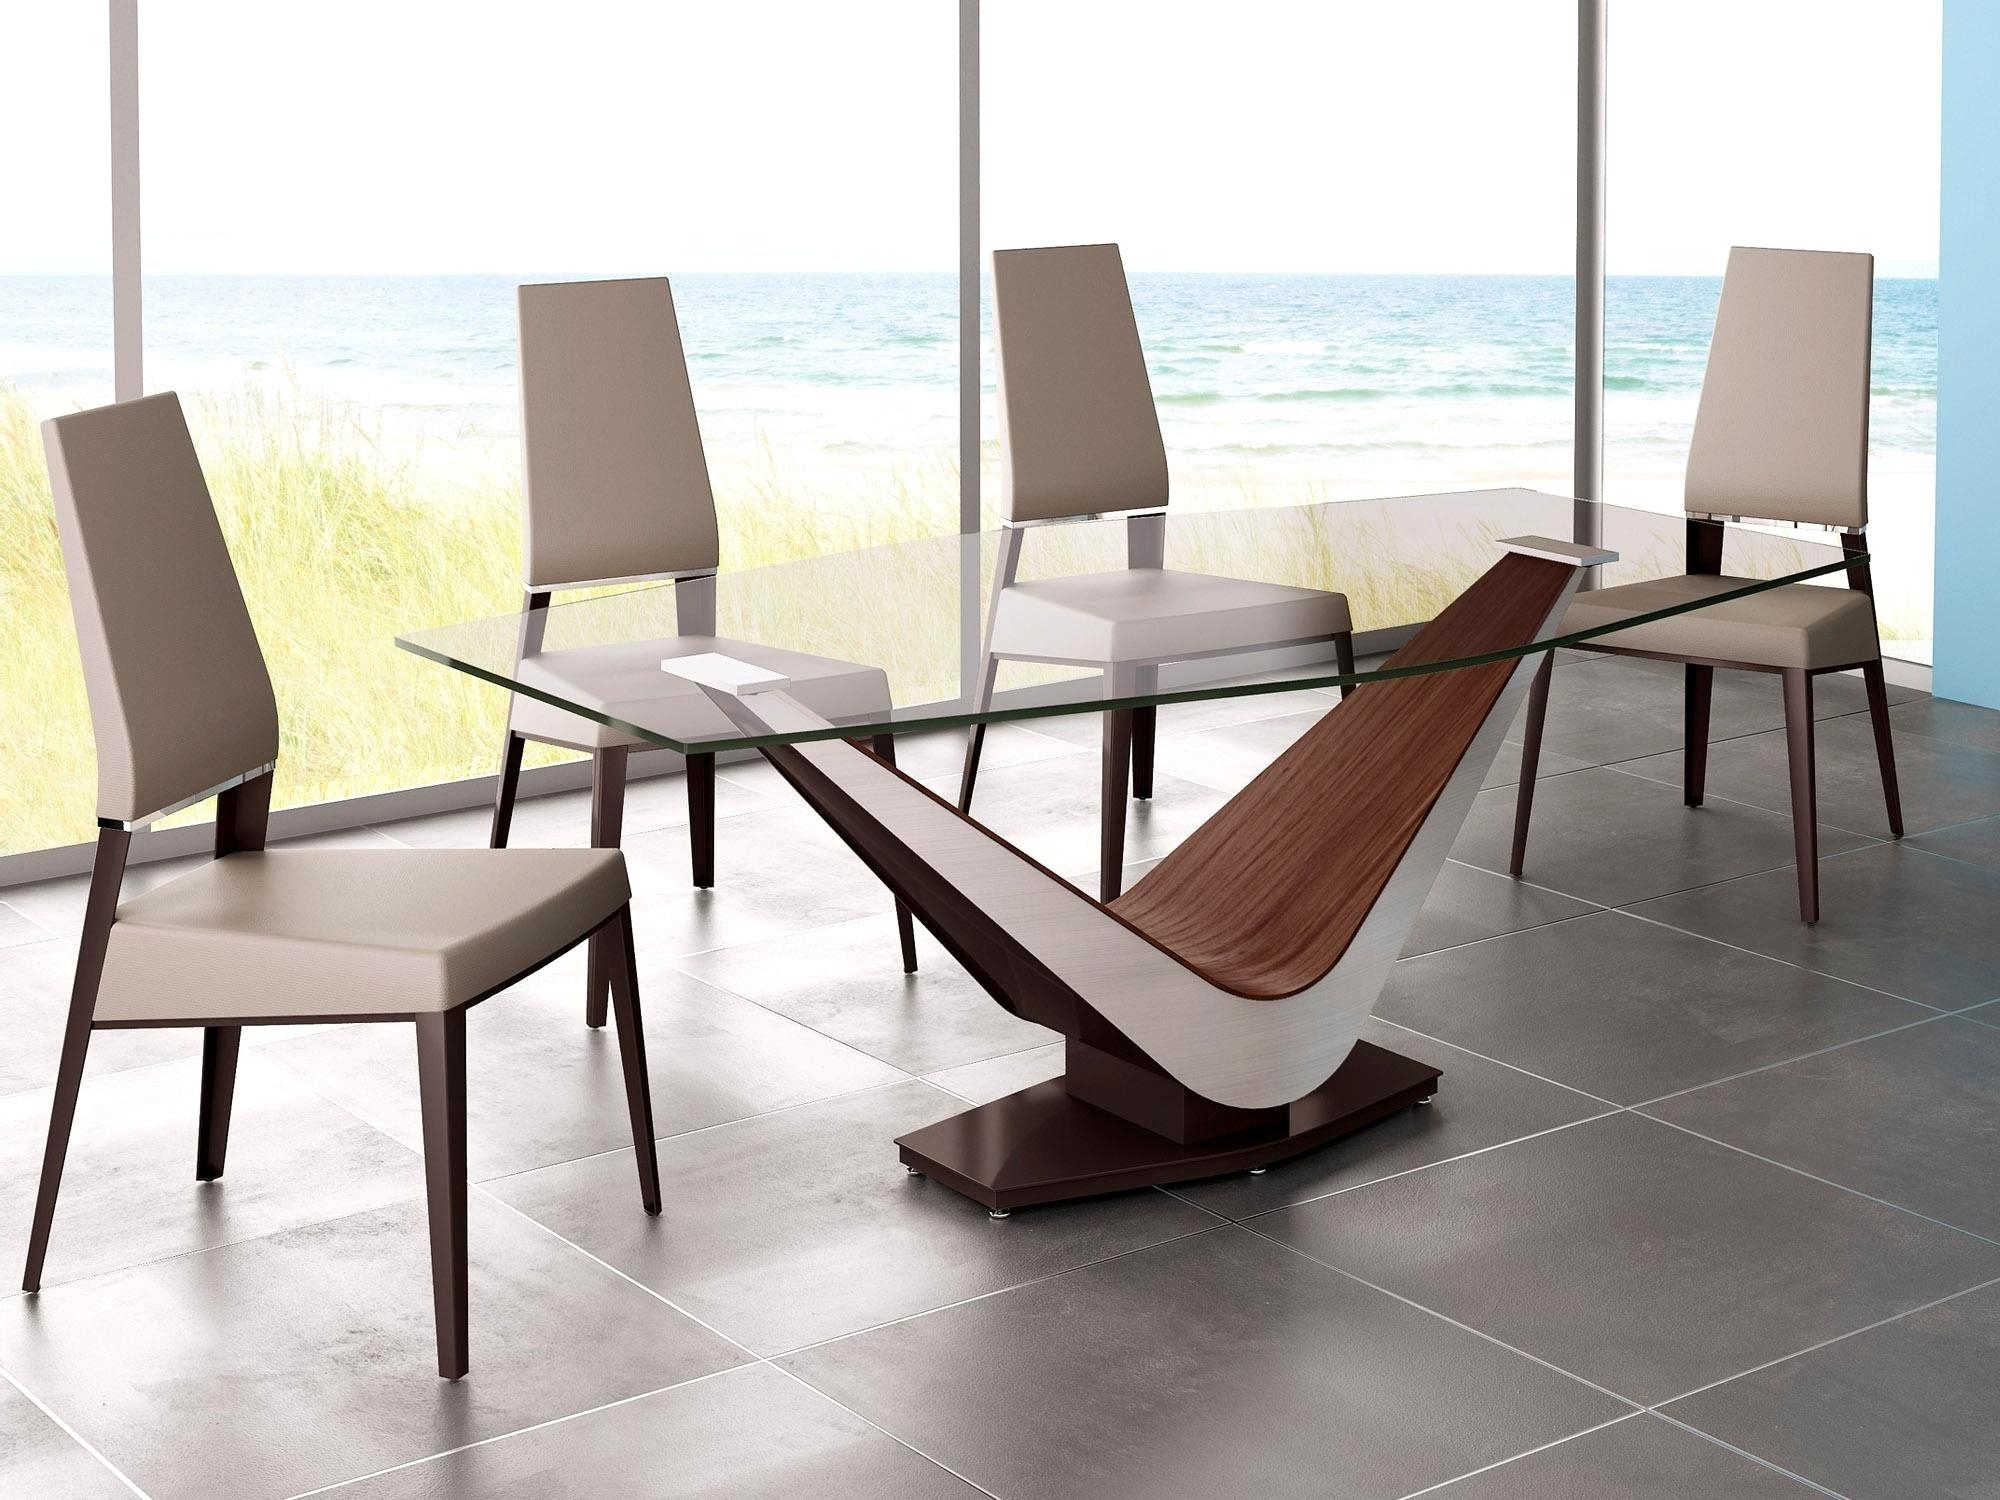 Fashionable Contemporary Dining Tables Throughout Outstanding Modern Design Dining Tables Full Size Modern Dining (View 11 of 25)